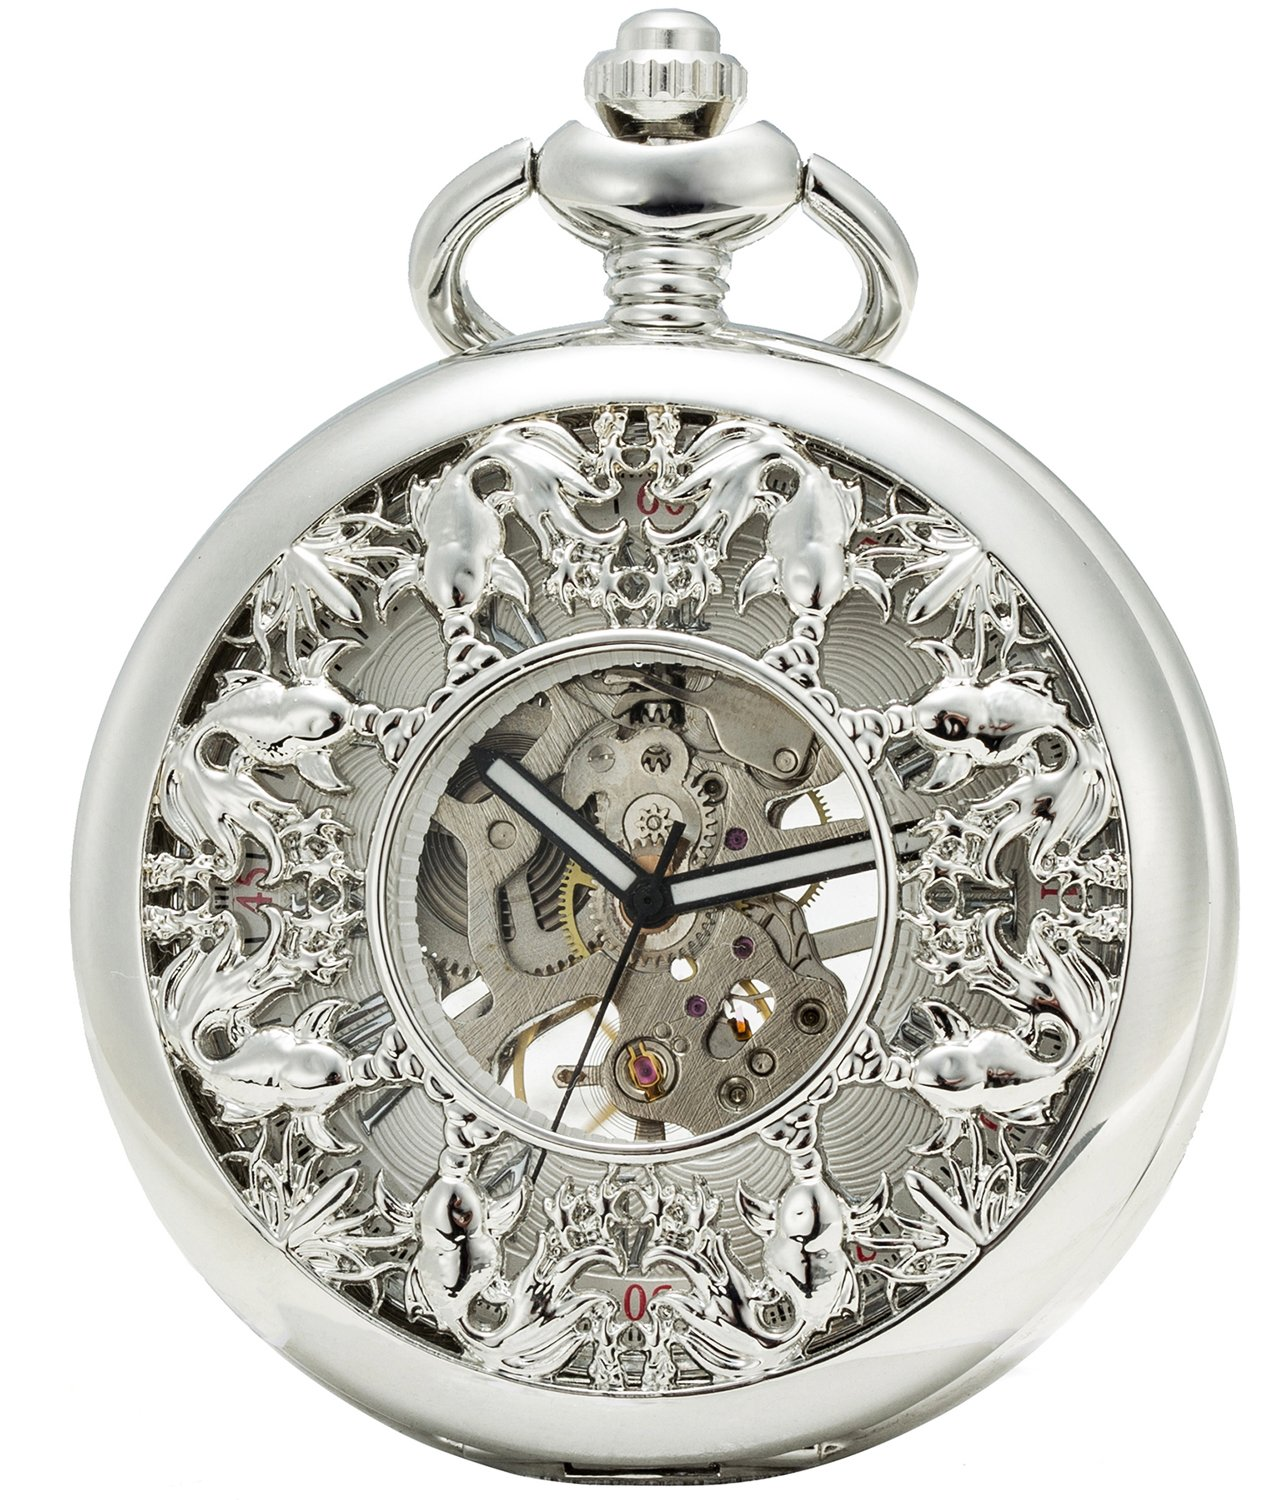 SEWOR Grace Koi Skeleton Pocket Watch Black Mechanical Hand Wind with Leather Gift Box (Sliver) by SEWOR